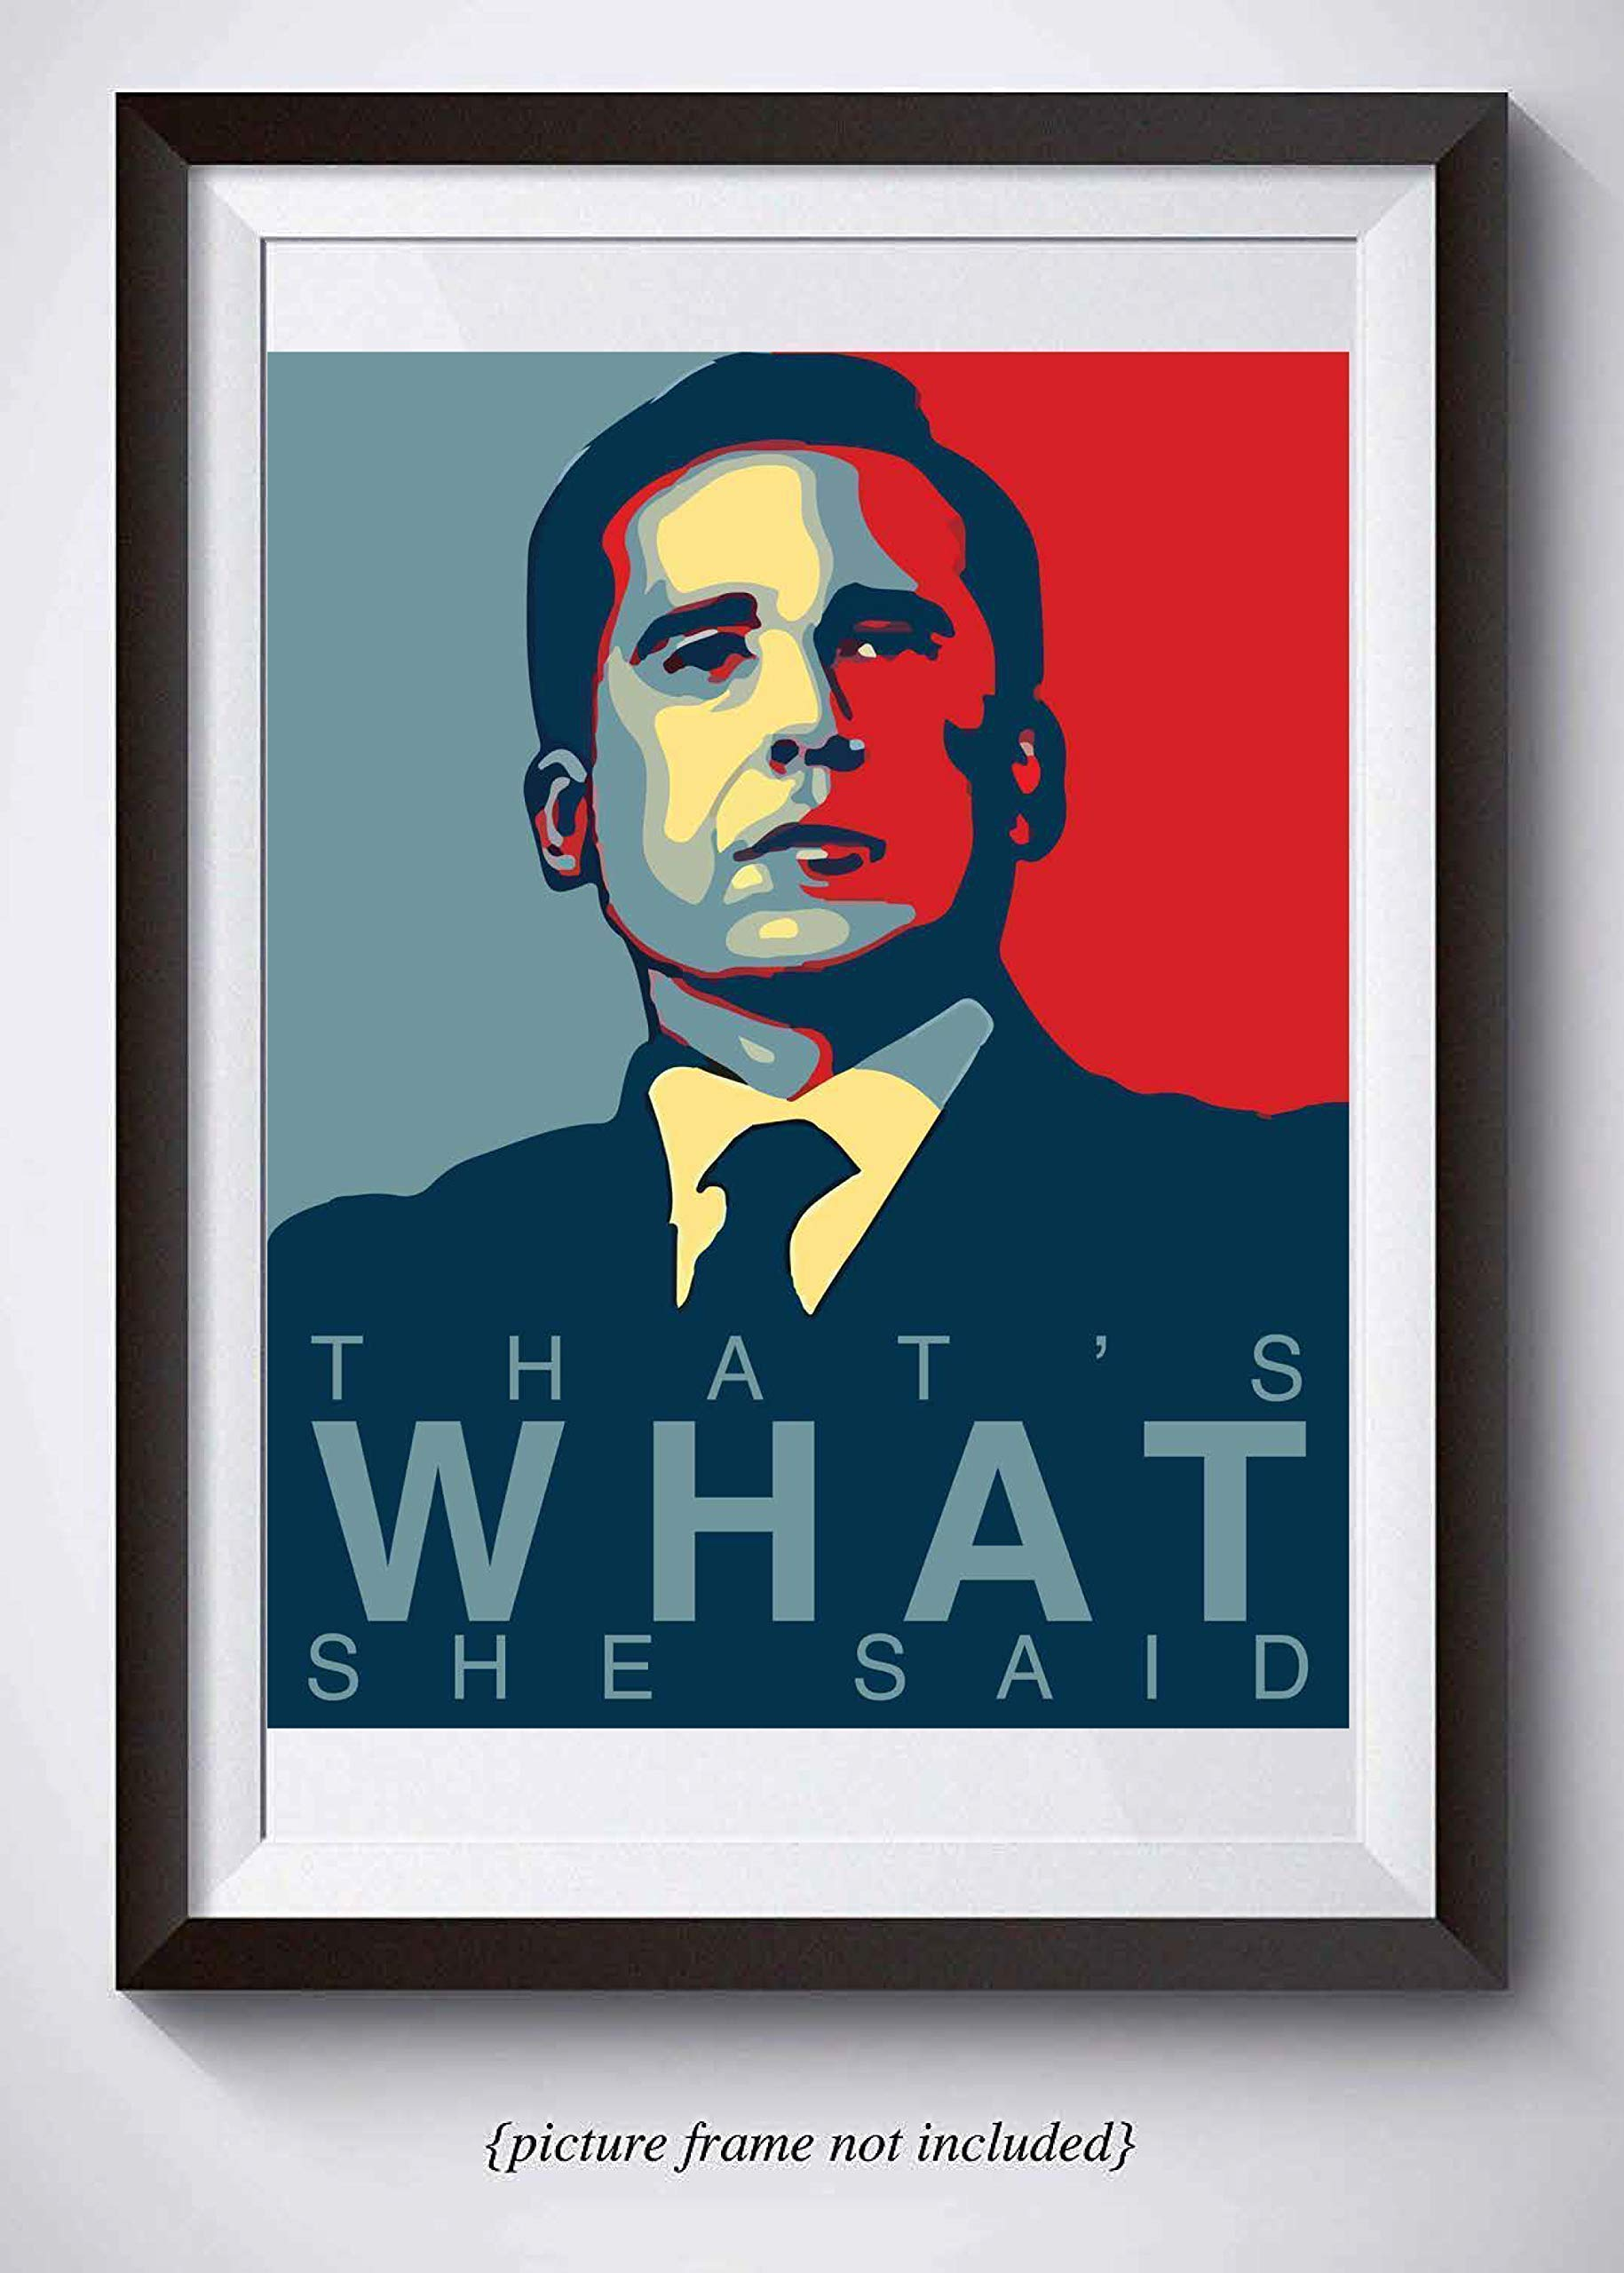 18.5 inch X 12.5 inch, Rolled Office Hope Poster Paper Print Thats What She Said Michael Scott Quote